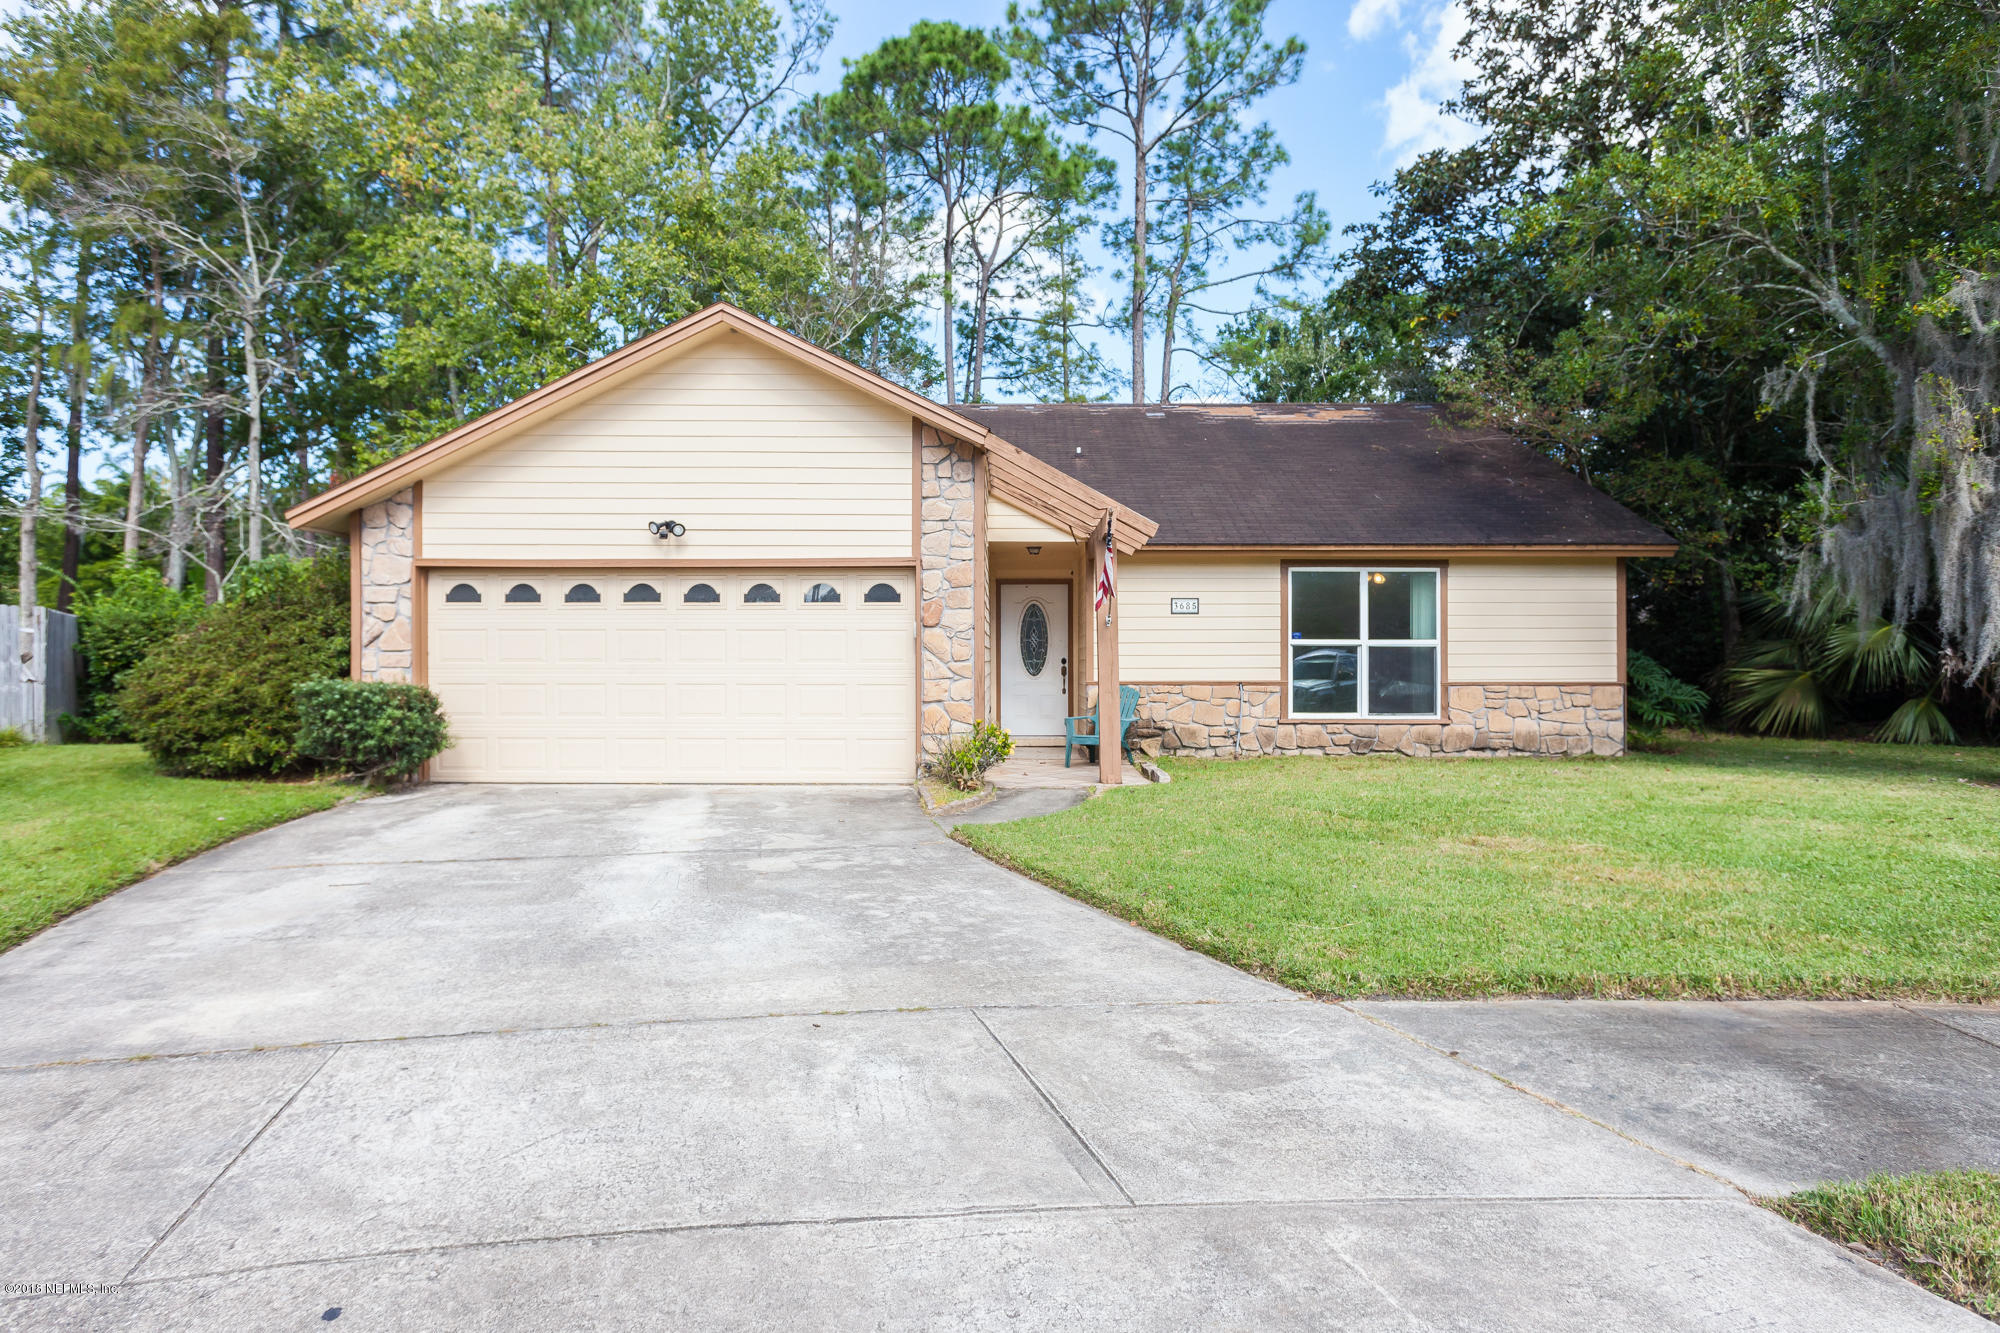 3685 WOOD BRANCH, JACKSONVILLE, FLORIDA 32257, 3 Bedrooms Bedrooms, ,2 BathroomsBathrooms,Residential - single family,For sale,WOOD BRANCH,964879